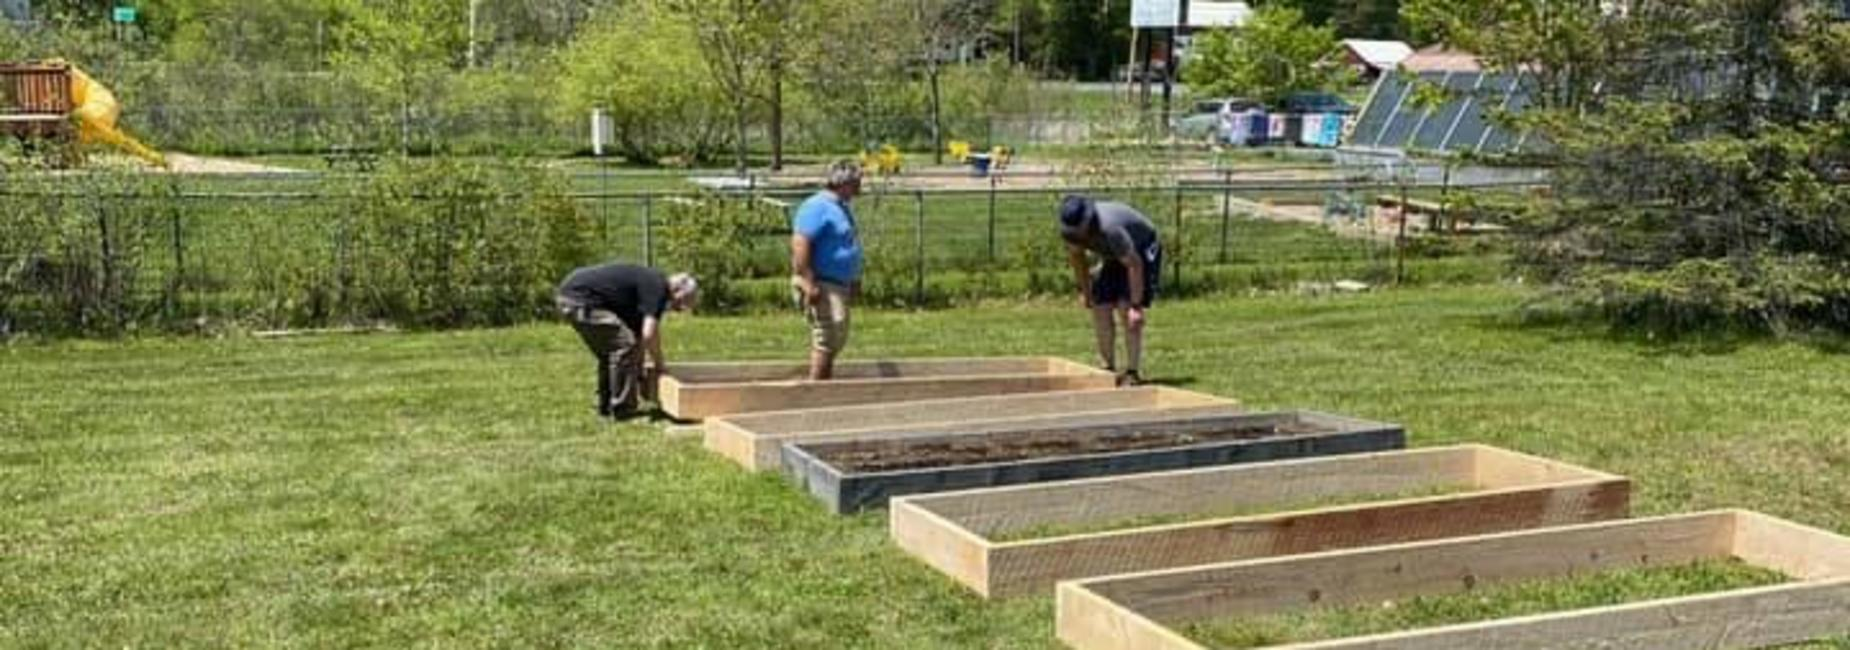 working on the raised garden beds